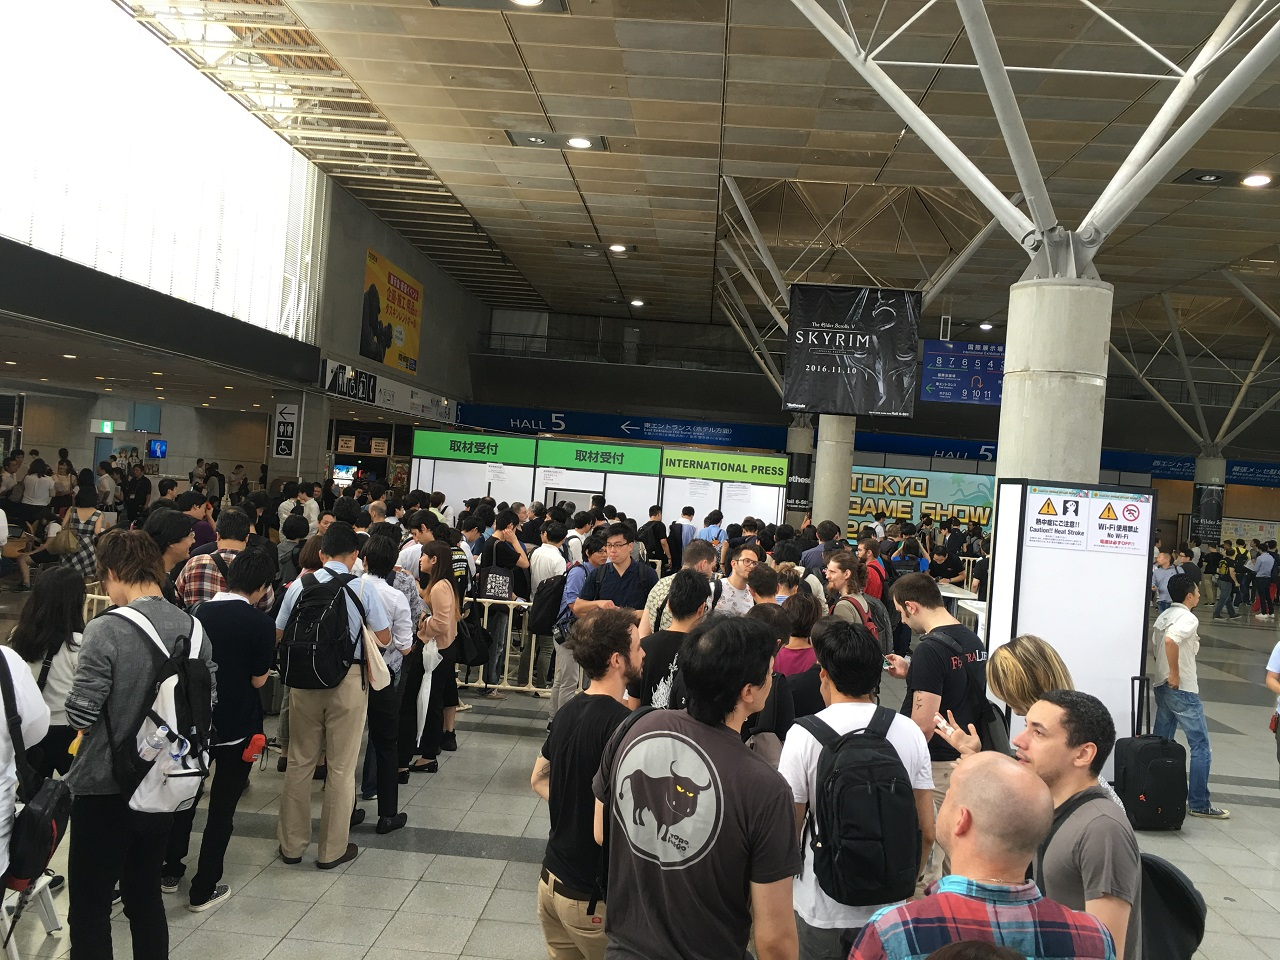 160915_28827_tgs_2016_international_press.JPG